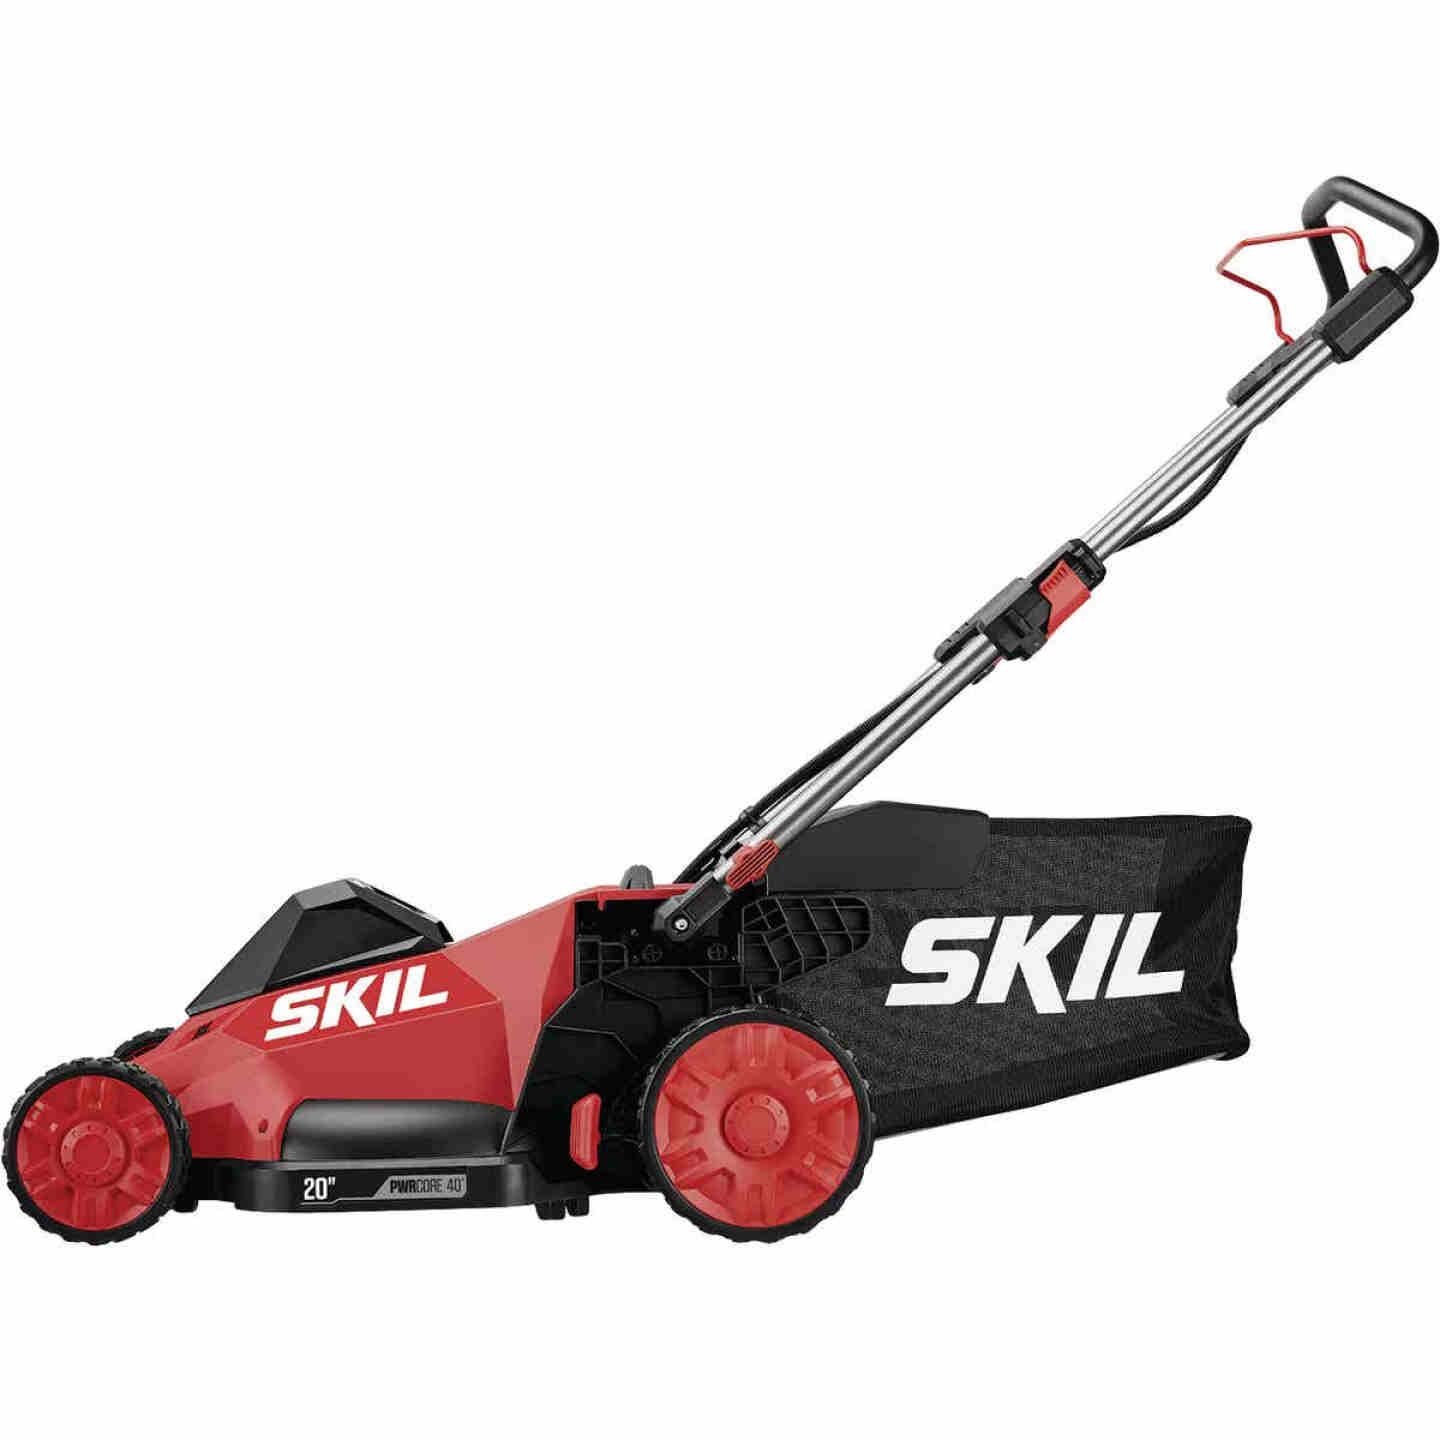 SKIL PWRCore 40V Brushless Self-Propelled Mower Kit and AutoPWRJump Charger Image 1